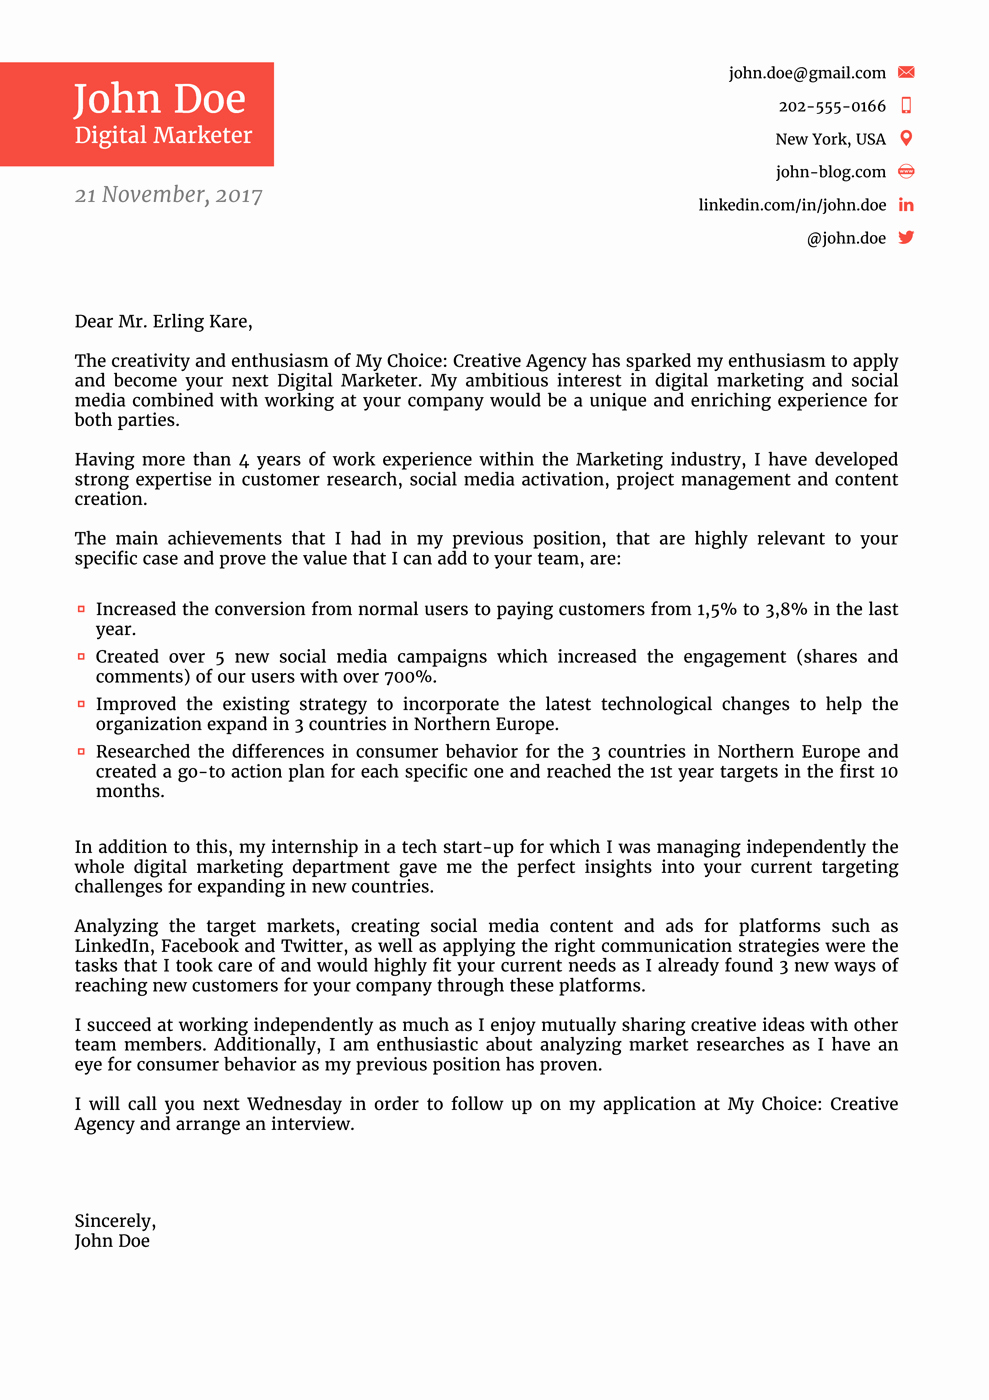 Cover Letter for Employment Luxury 8 Cover Letter Templates for 2019 [that Hr Will Love ]